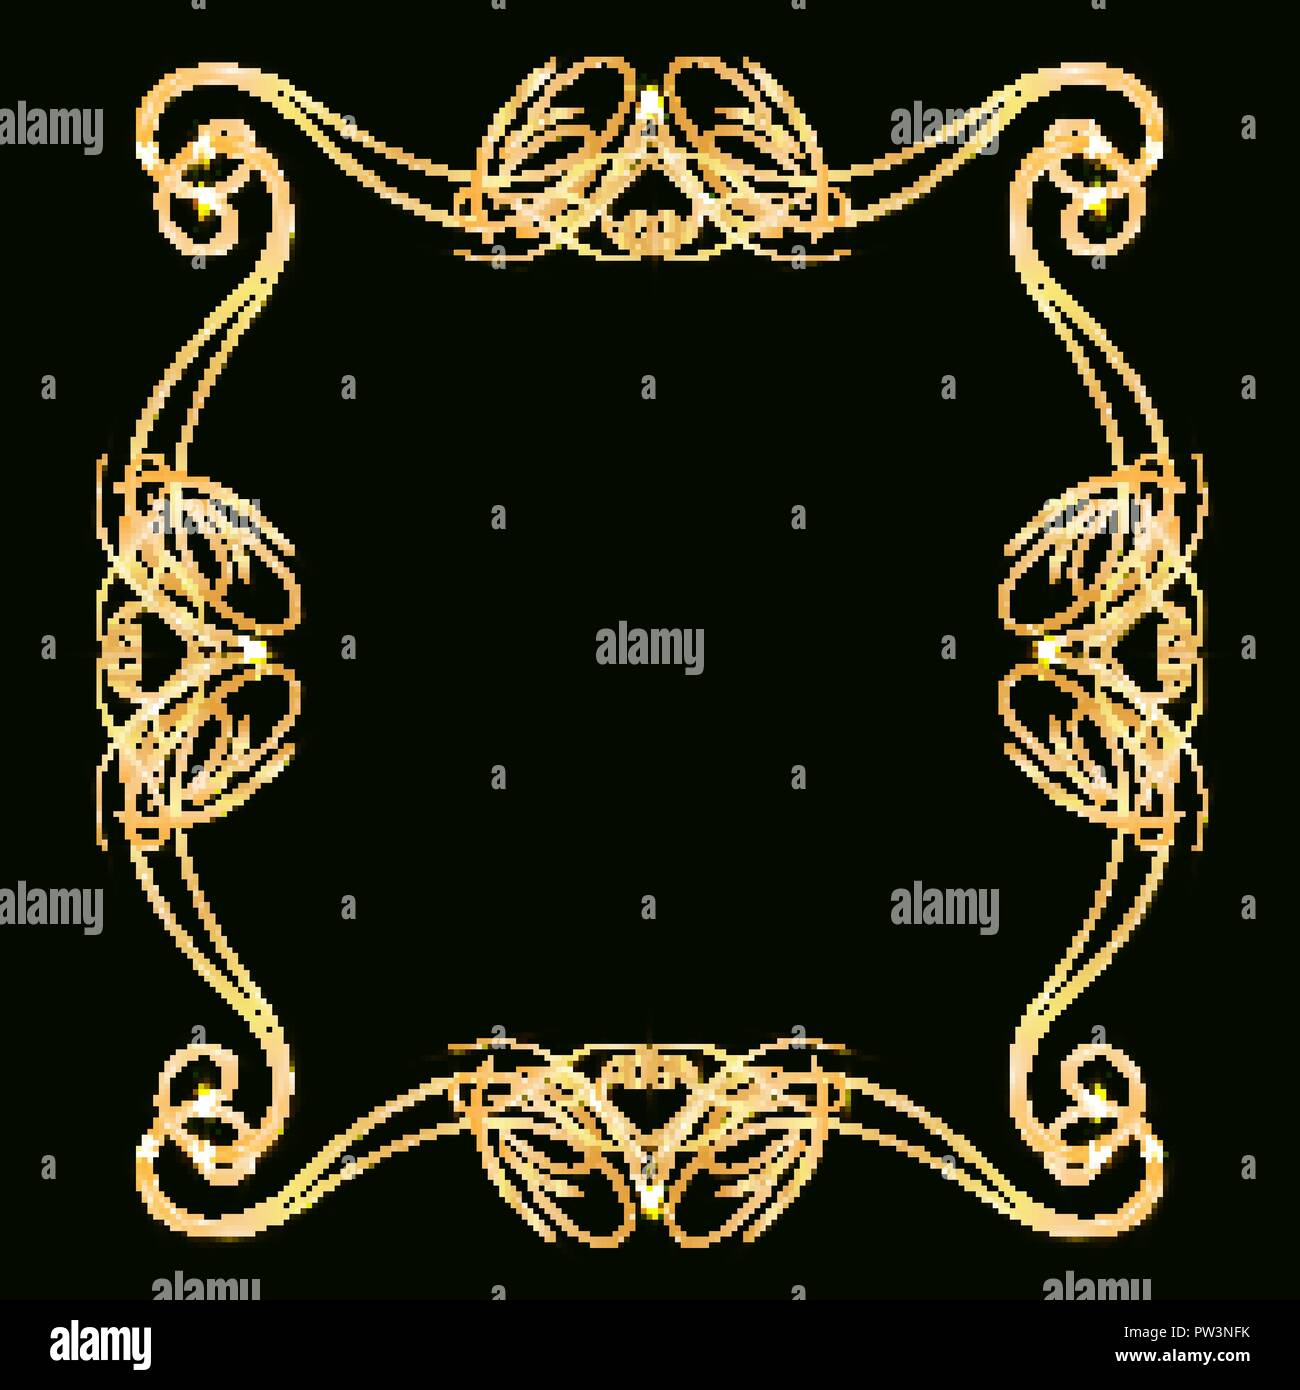 https www alamy com decorative gold frame with gold elements on a dark background for invitation cards wedding card decor blank for the cover design image221973575 html